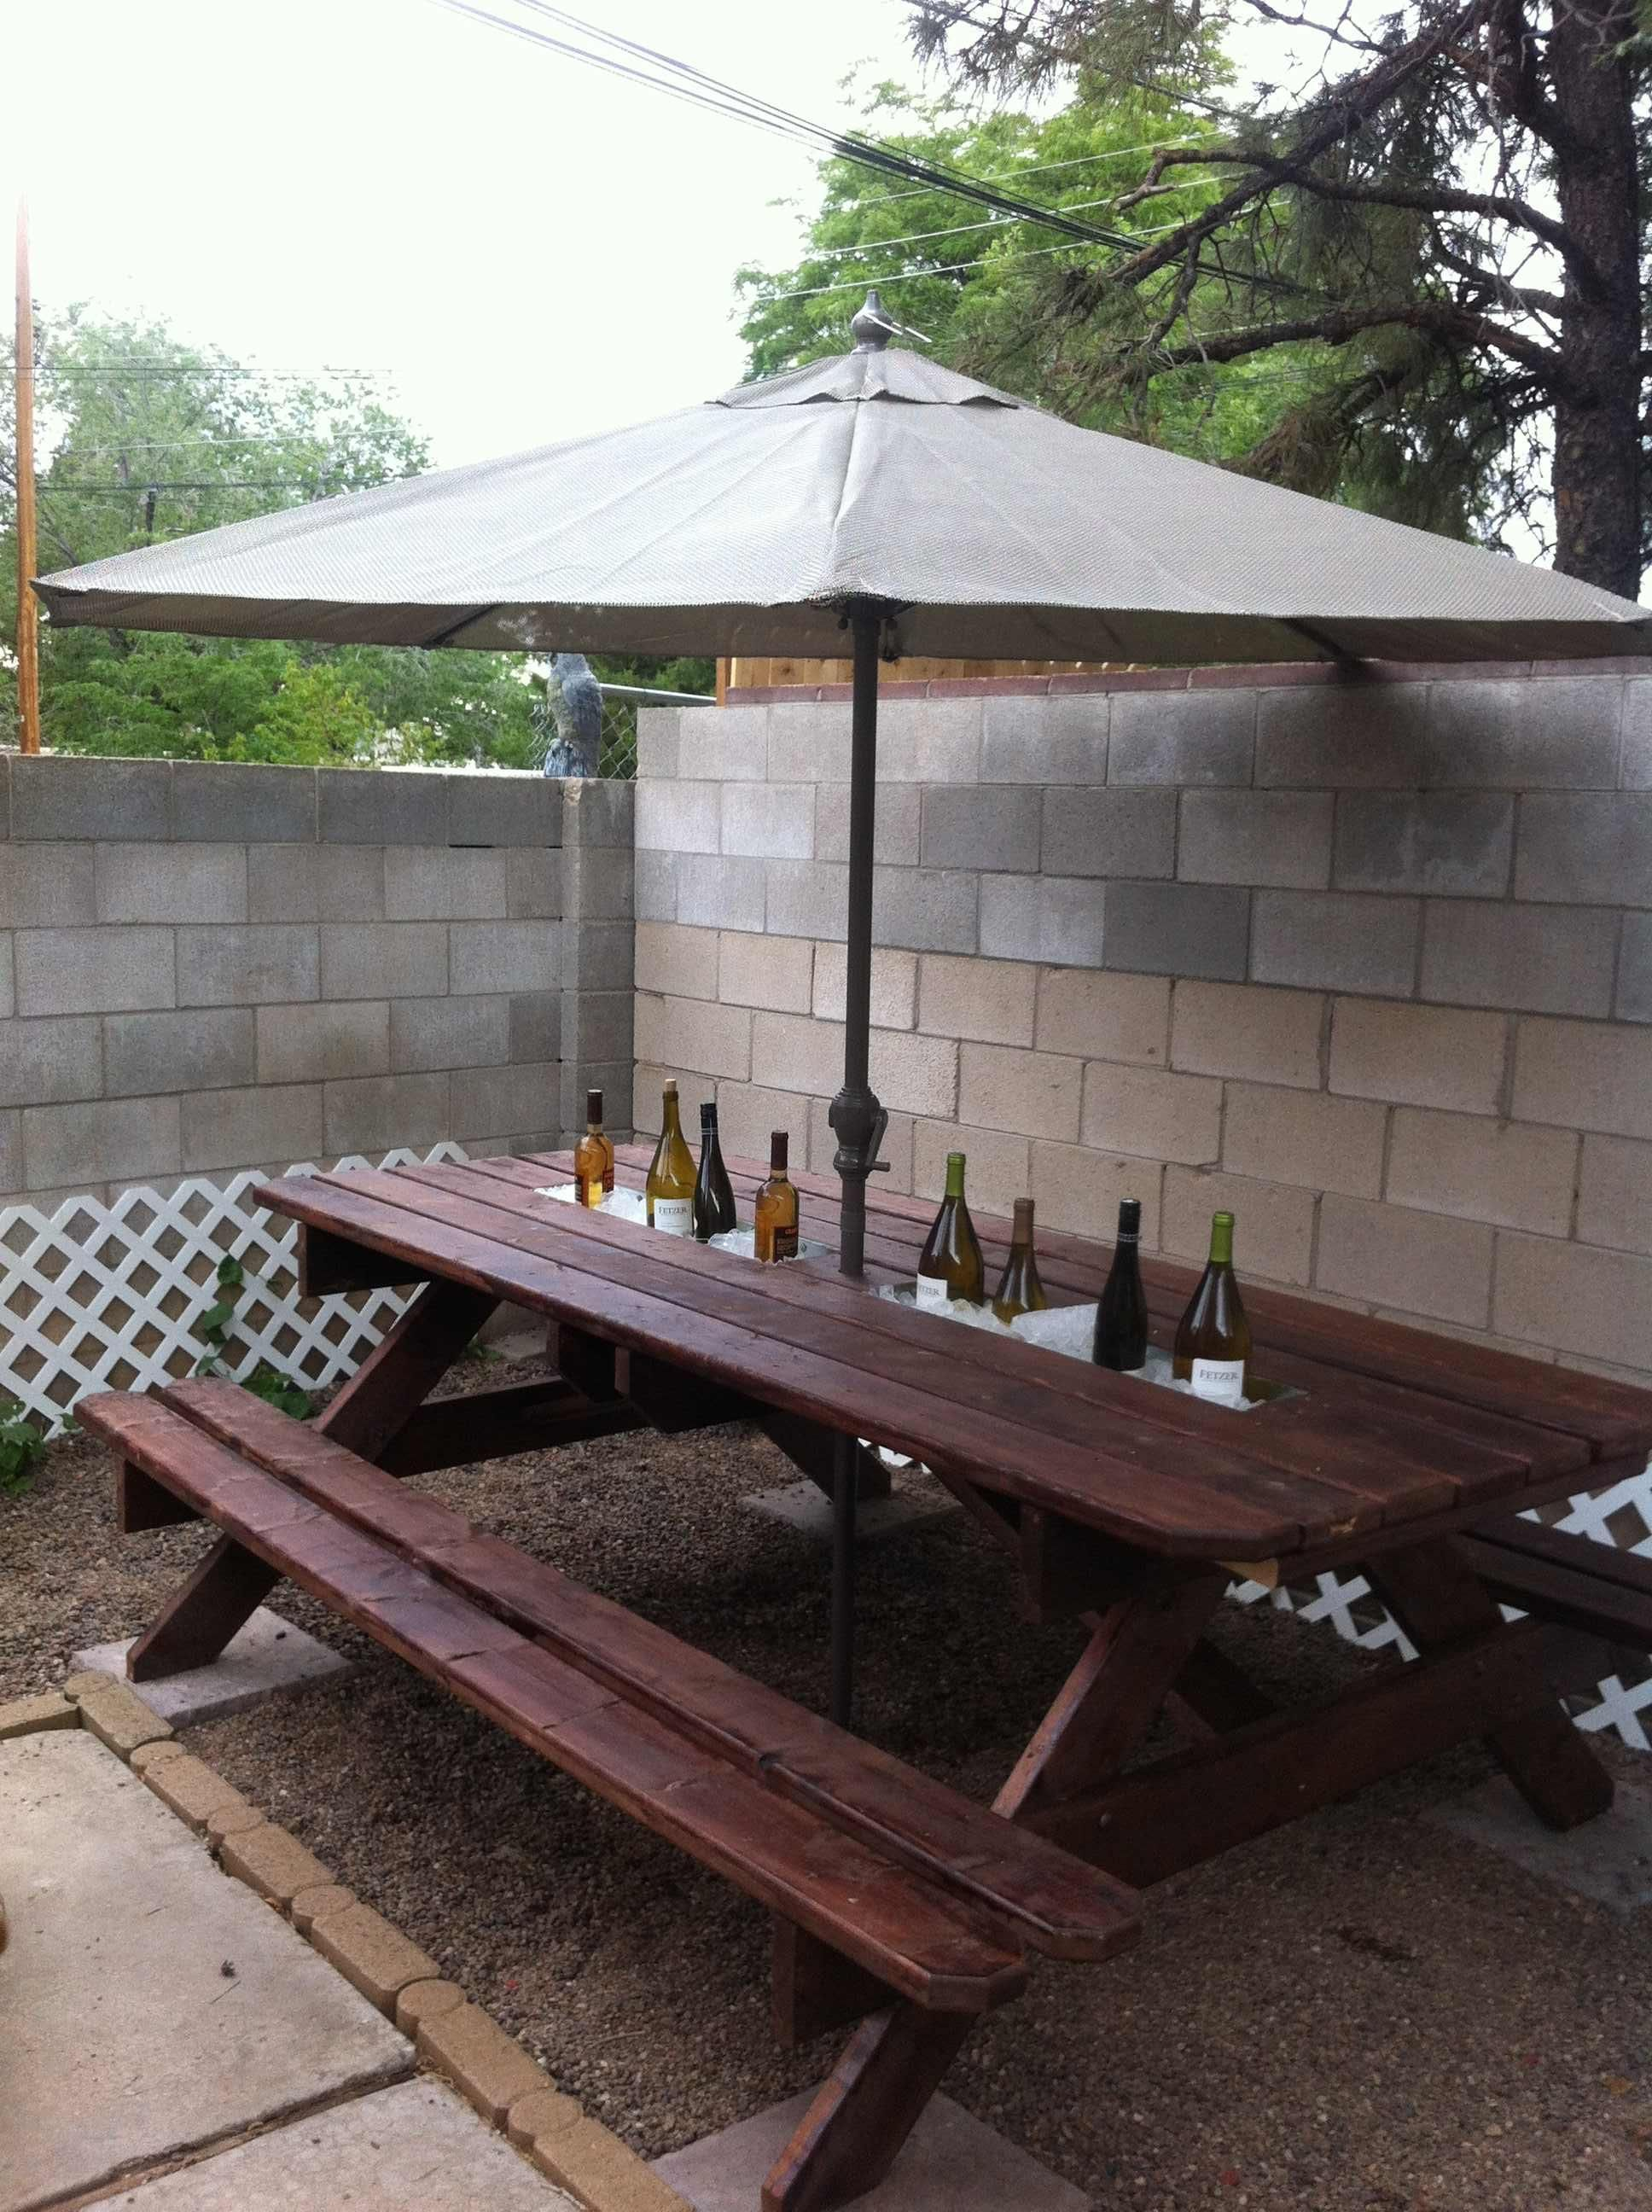 Rain Gutter Cool Drink Server Built Into A Picnic Table (add A Downspout To  Drain